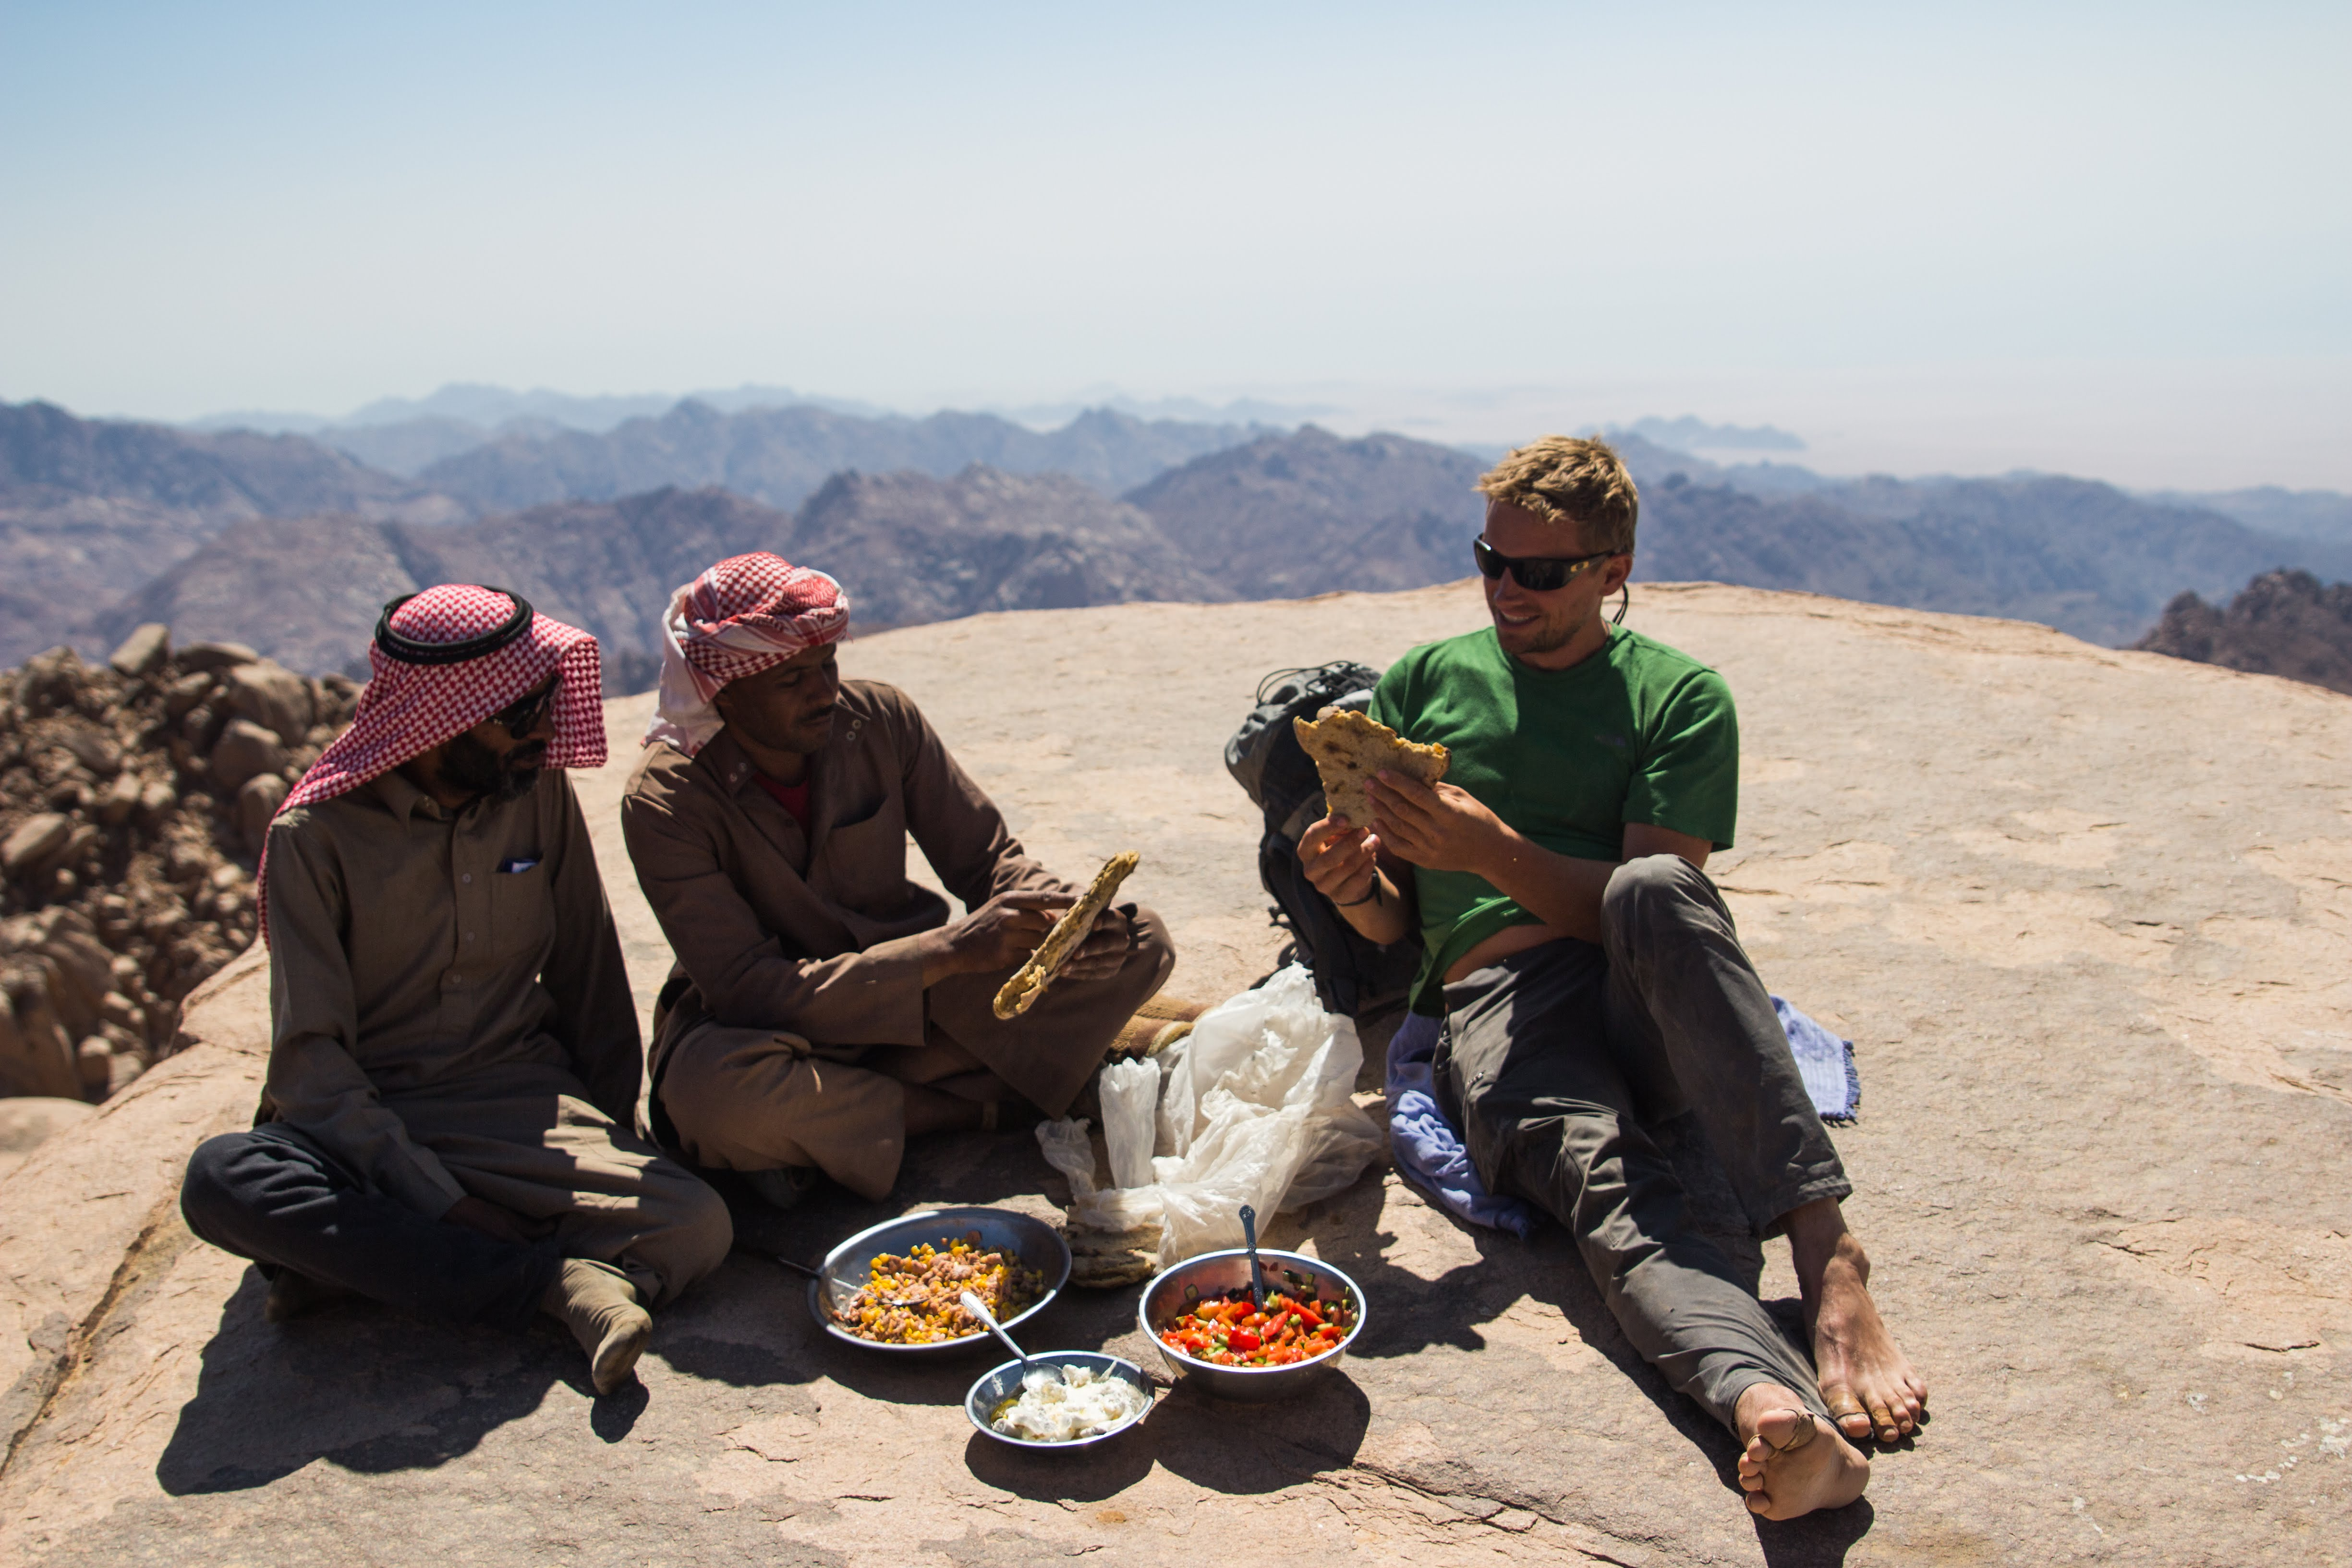 Dave Lucas makes time for lunch on expedition in the Sinai desert © Secret Compass